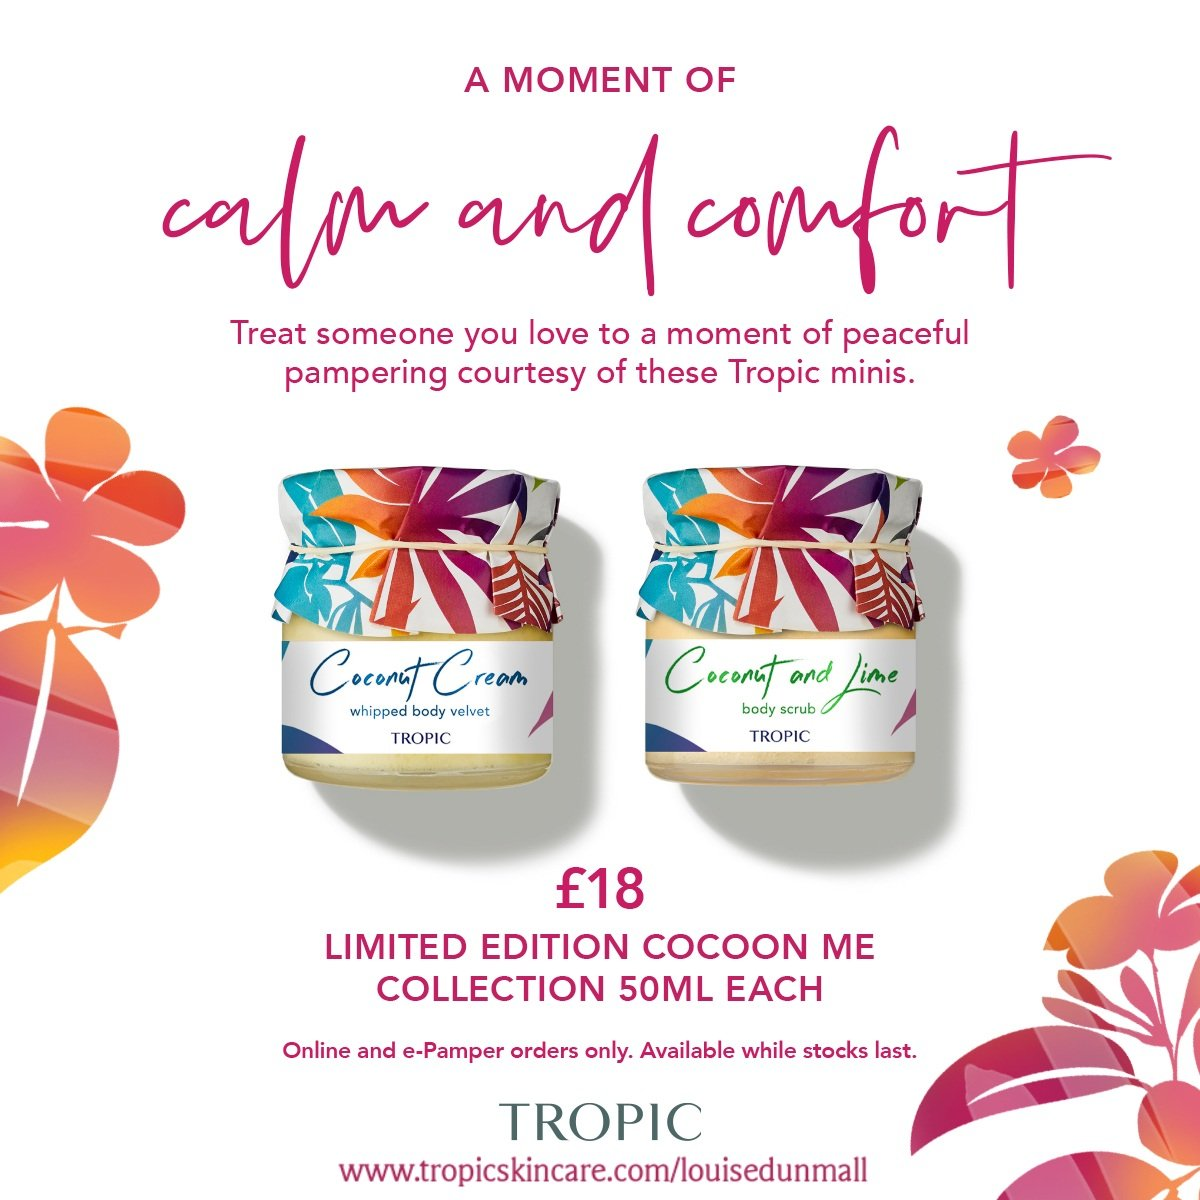 Fancy treating mum or the amazing women in your life to something special this Mother's Day? Look no further than Tropic's limited edition collections and products! From best-selling minis to carefully created collections.  #LoveTropic #MothersDay